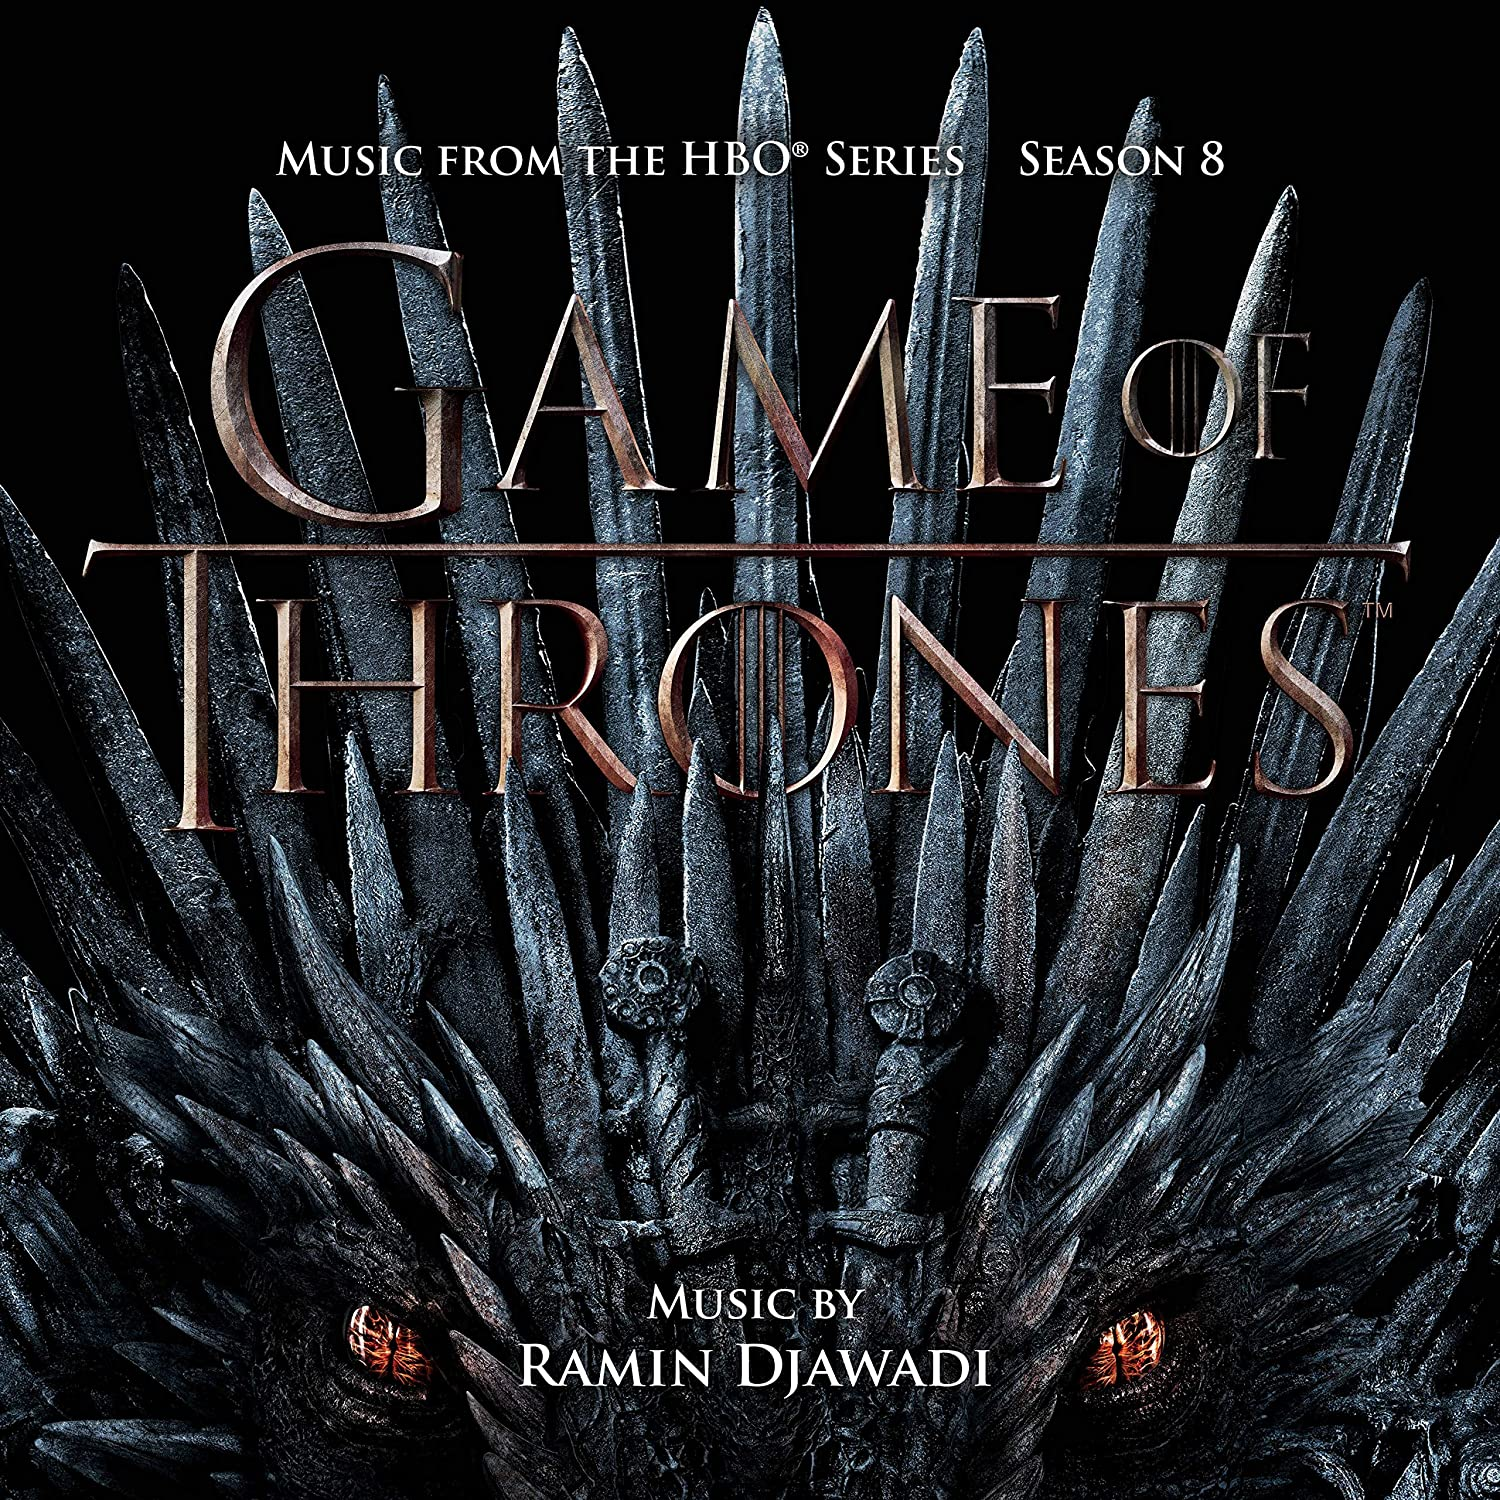 Game Of Thrones: Season 8 (Music from the HBO Series) [VINYL]:  Amazon.co.uk: Music